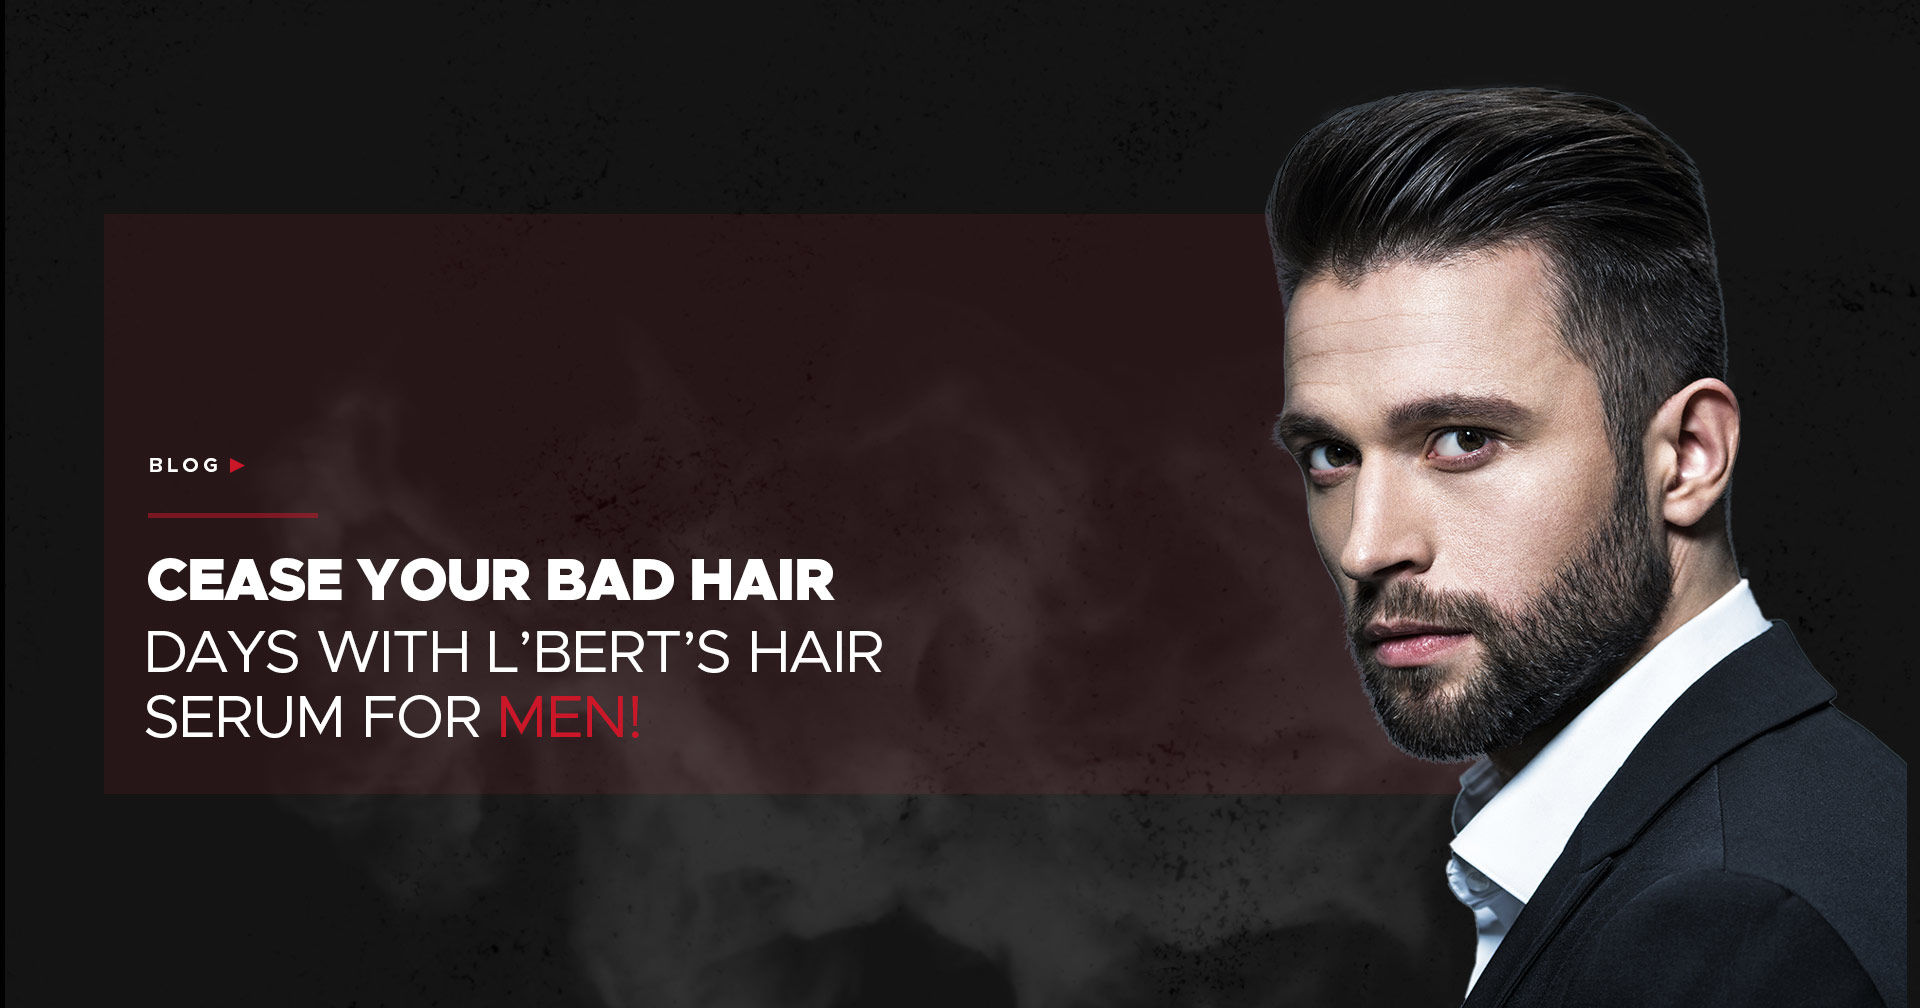 Cease Your Bad Hair Days with L'BERT's Hair Serum for Men!